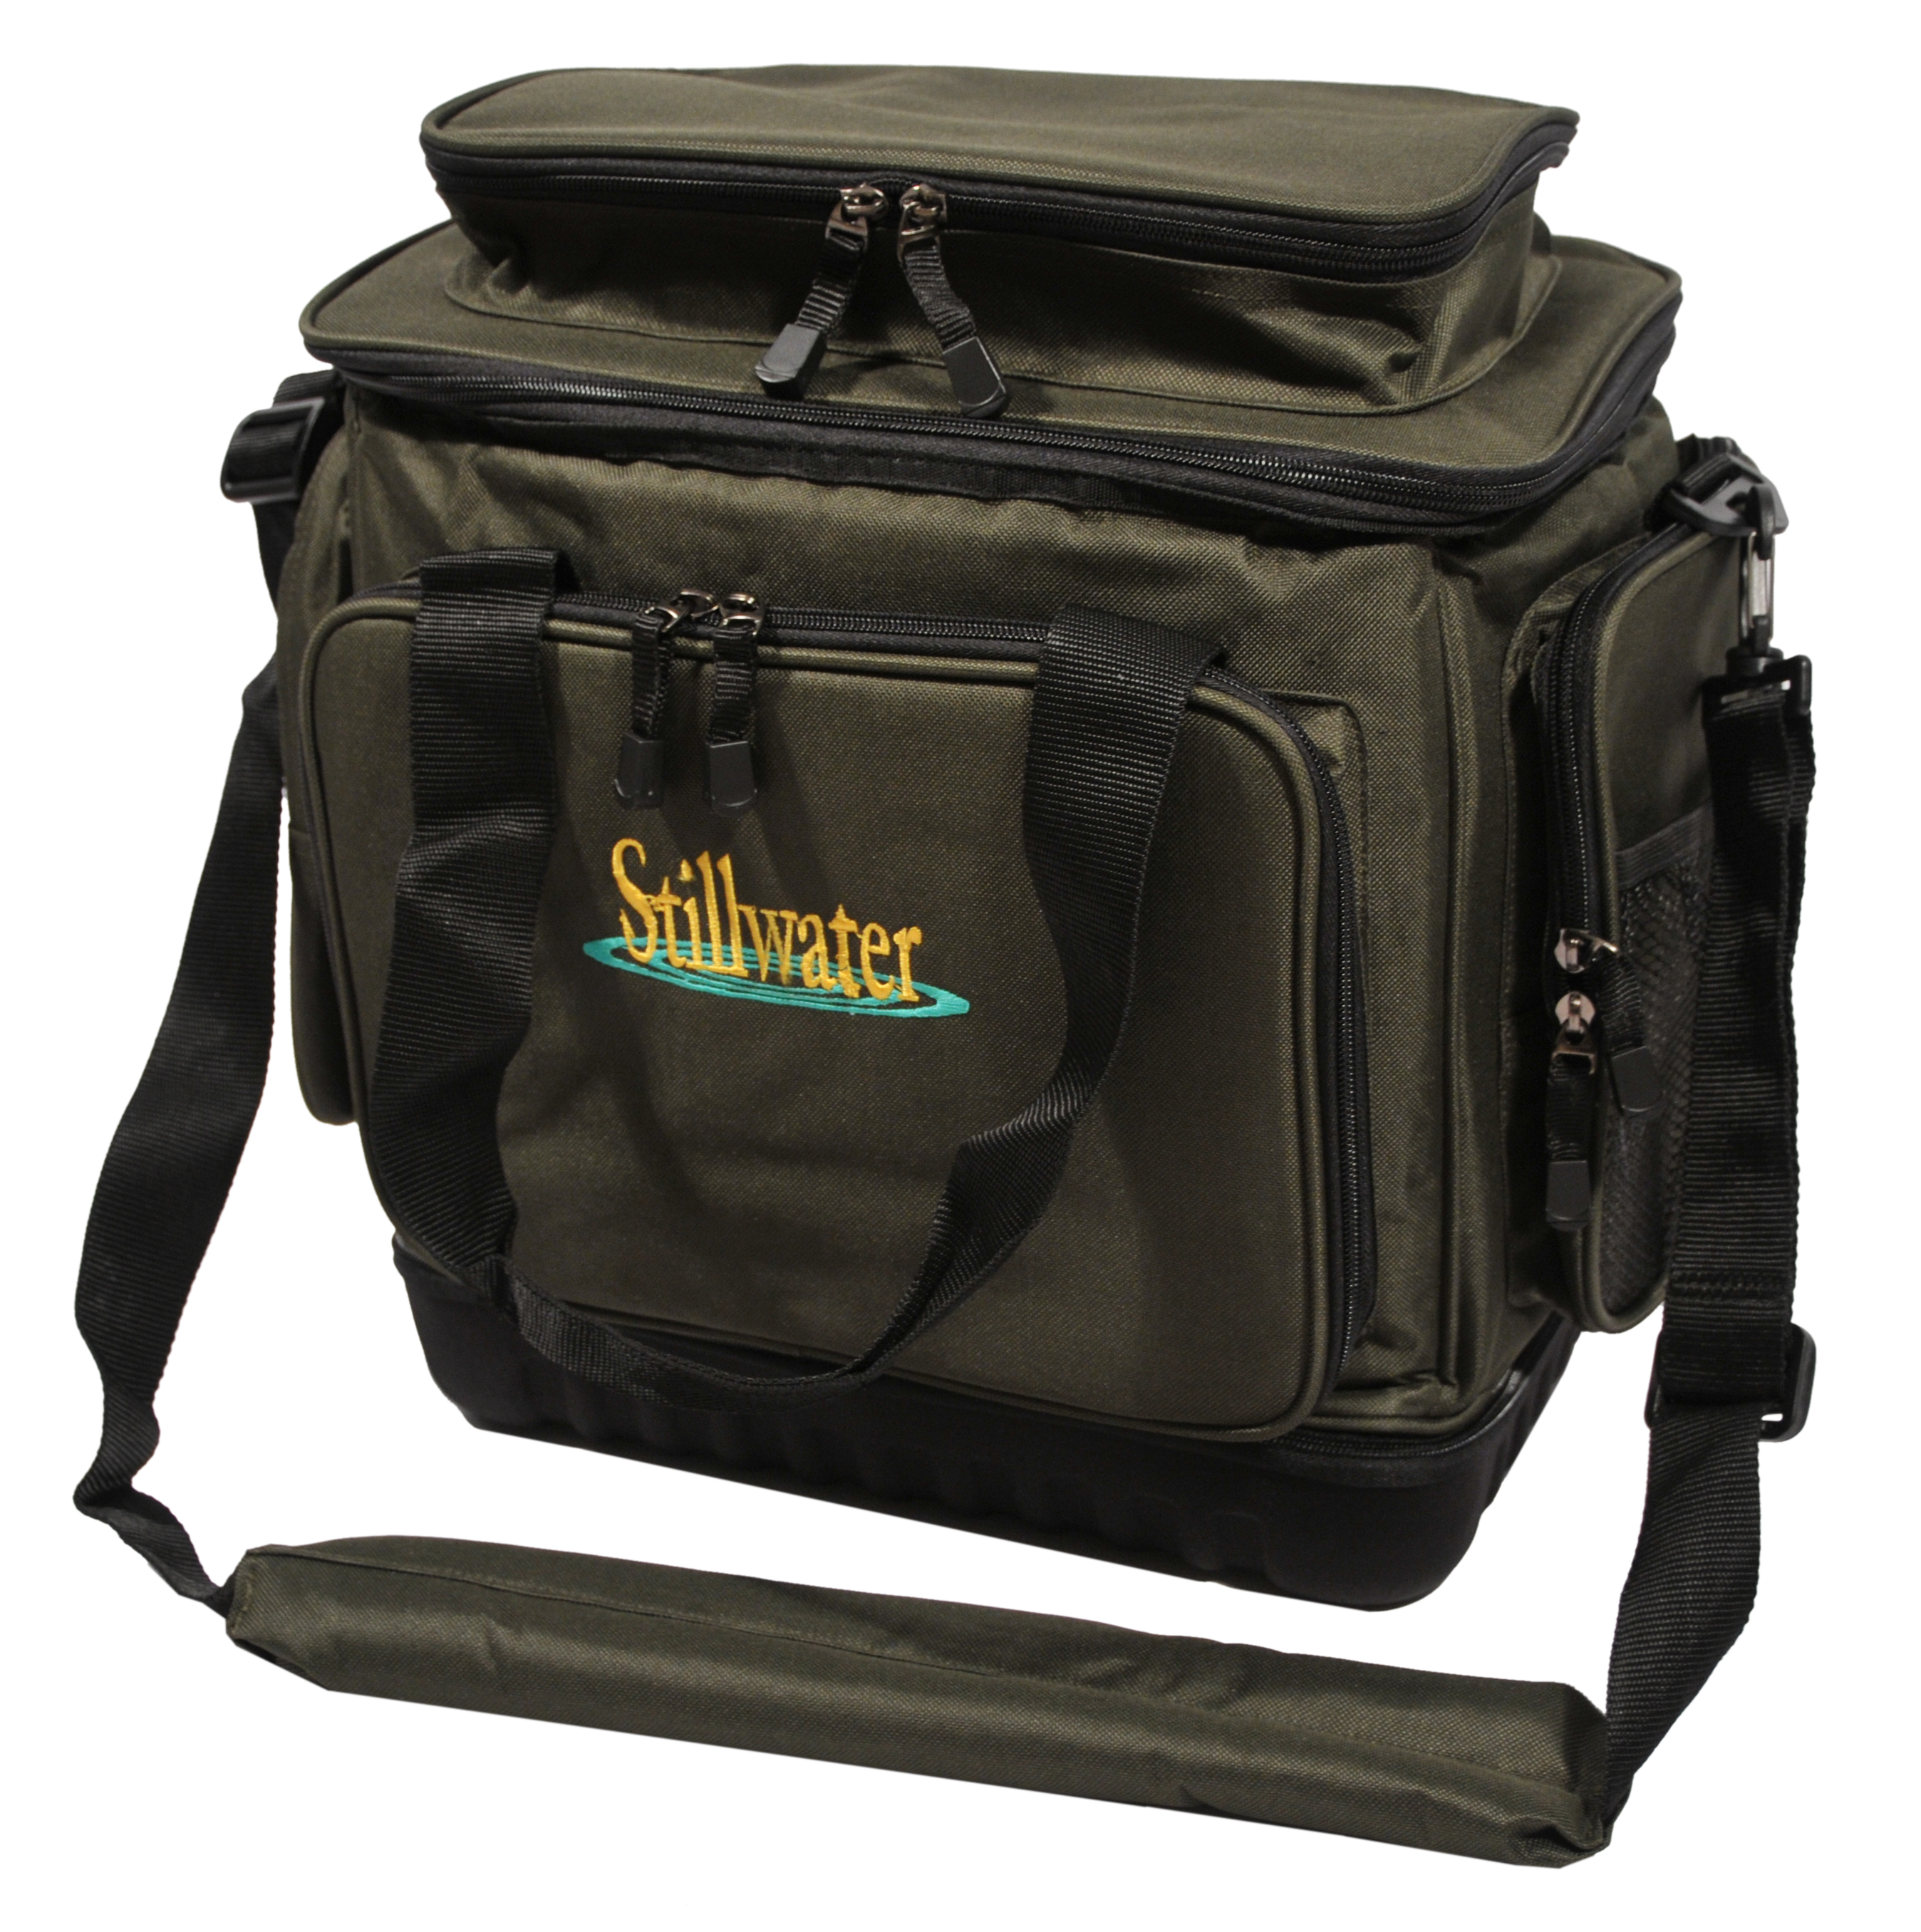 Stillwater module rig 39 n 39 bait bag glasgow angling centre for Rigged fishing backpack